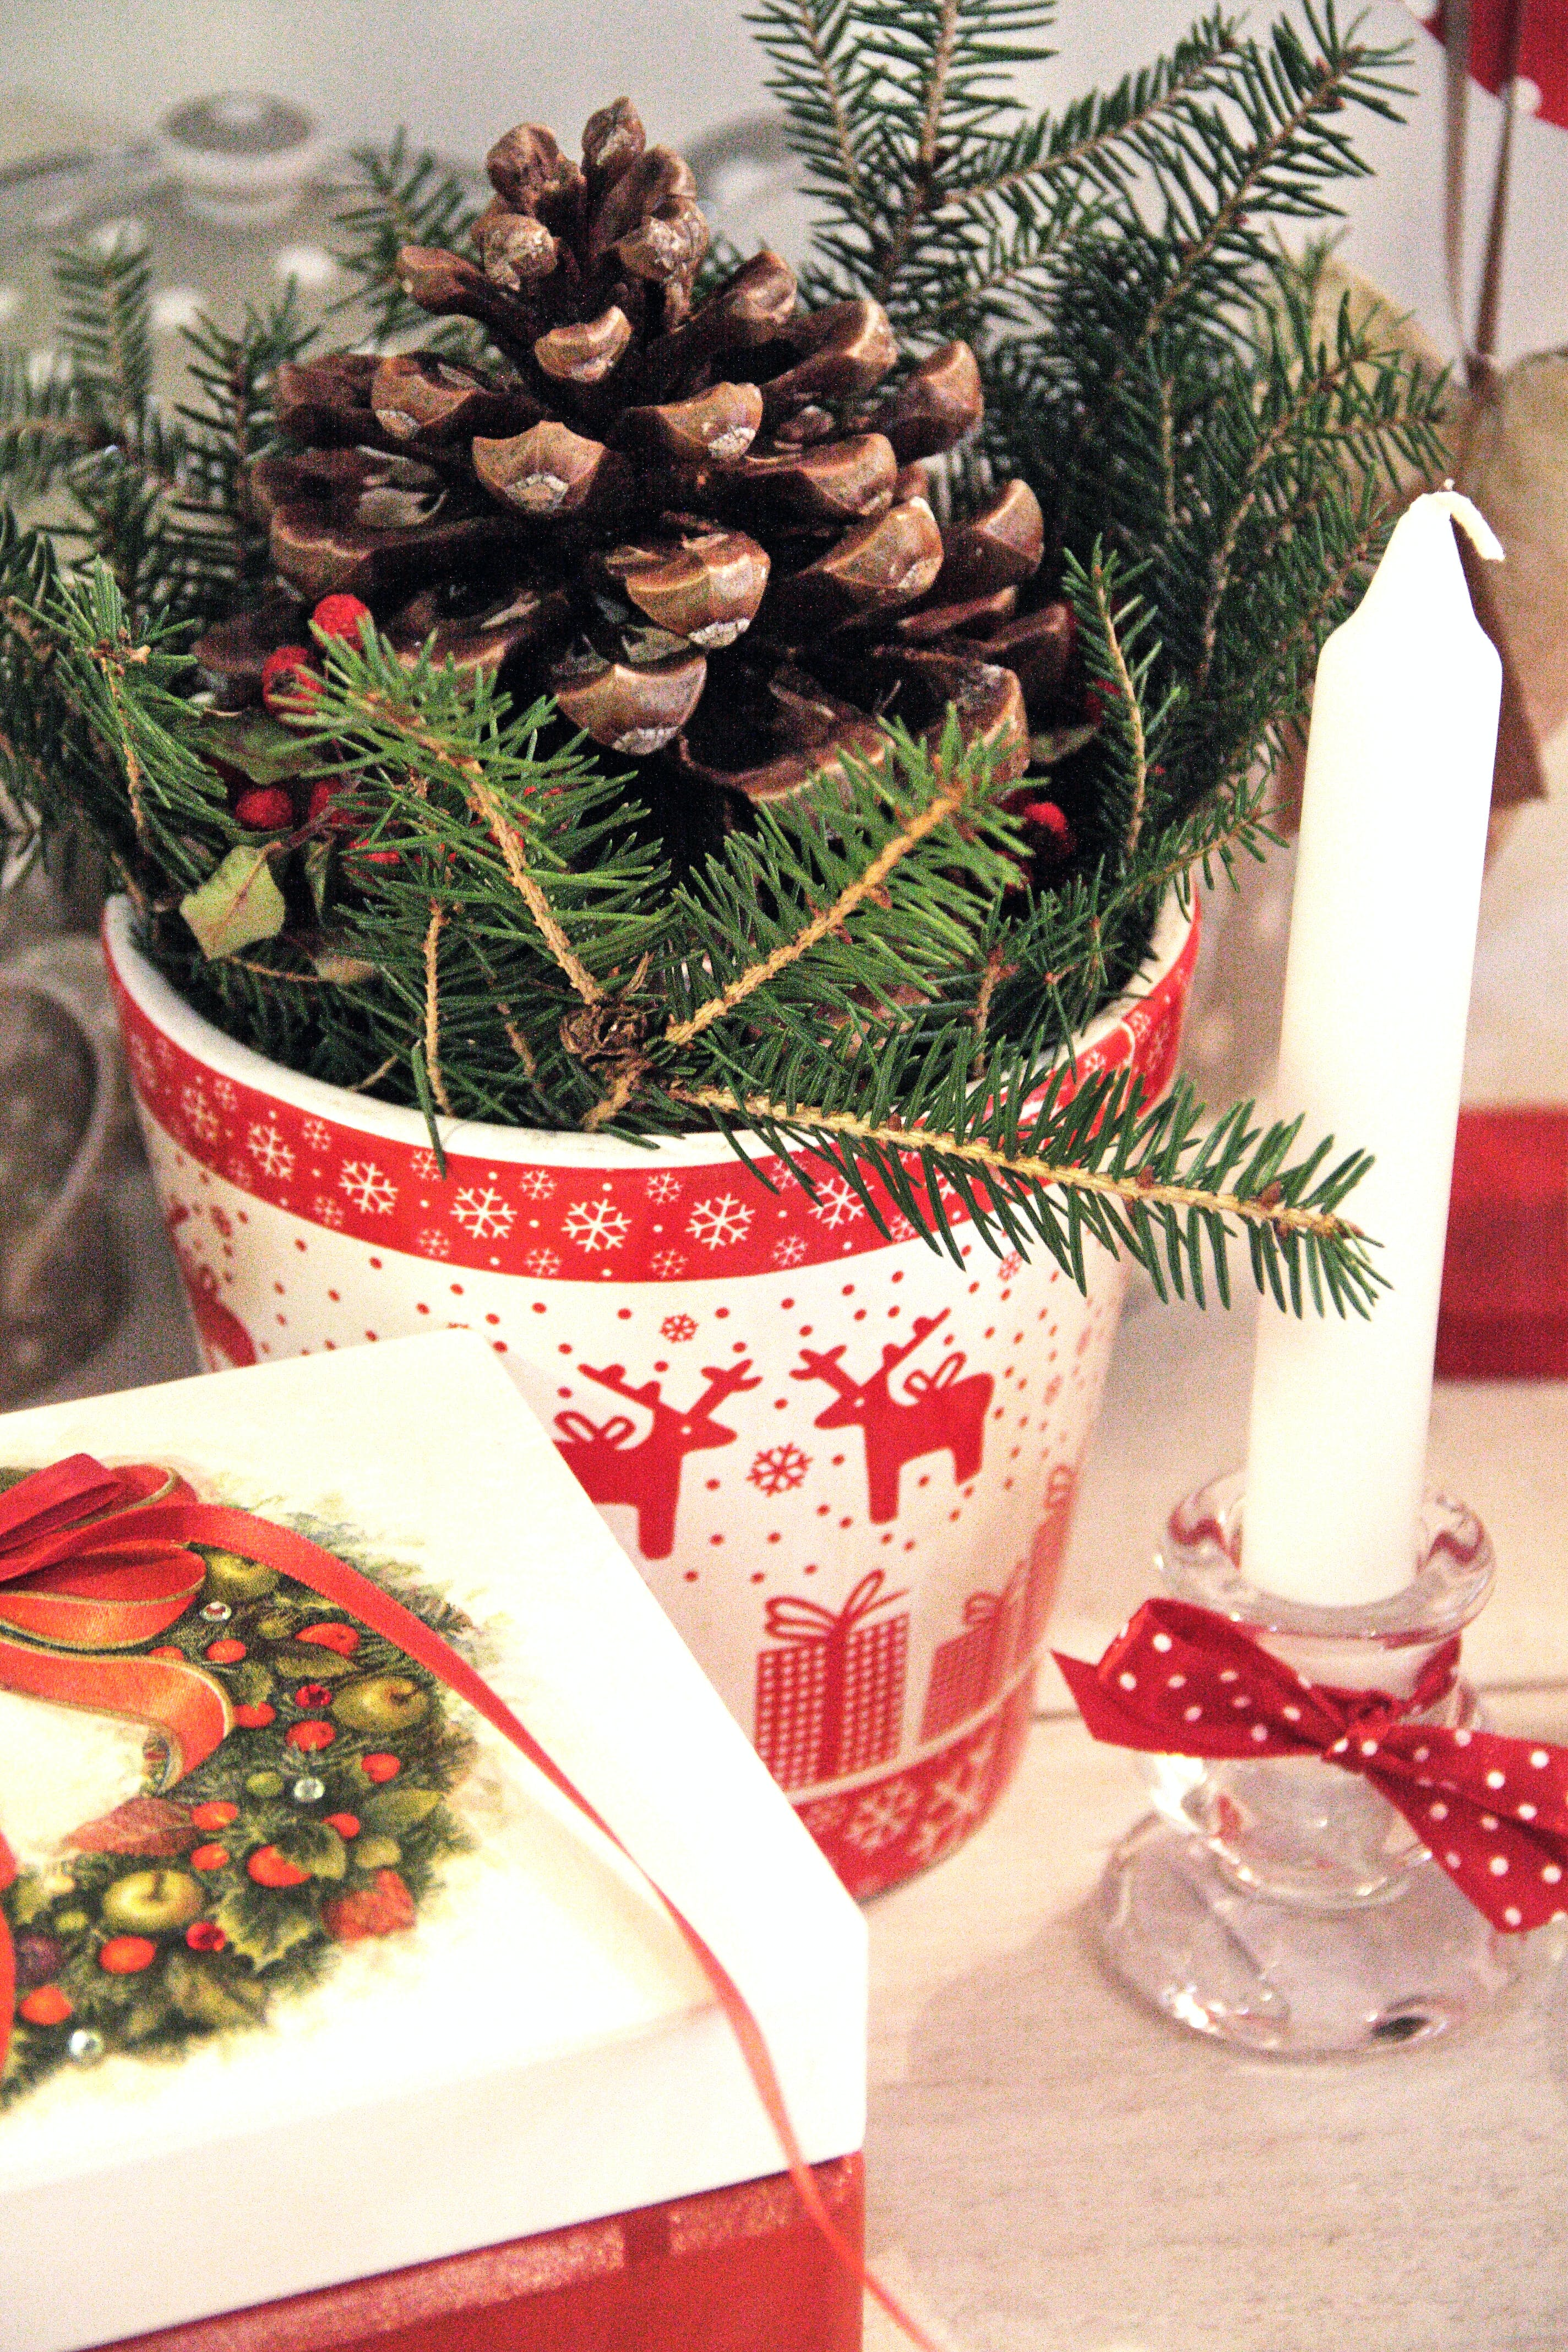 Pine Cone on Plastic Cup Beside White Candle